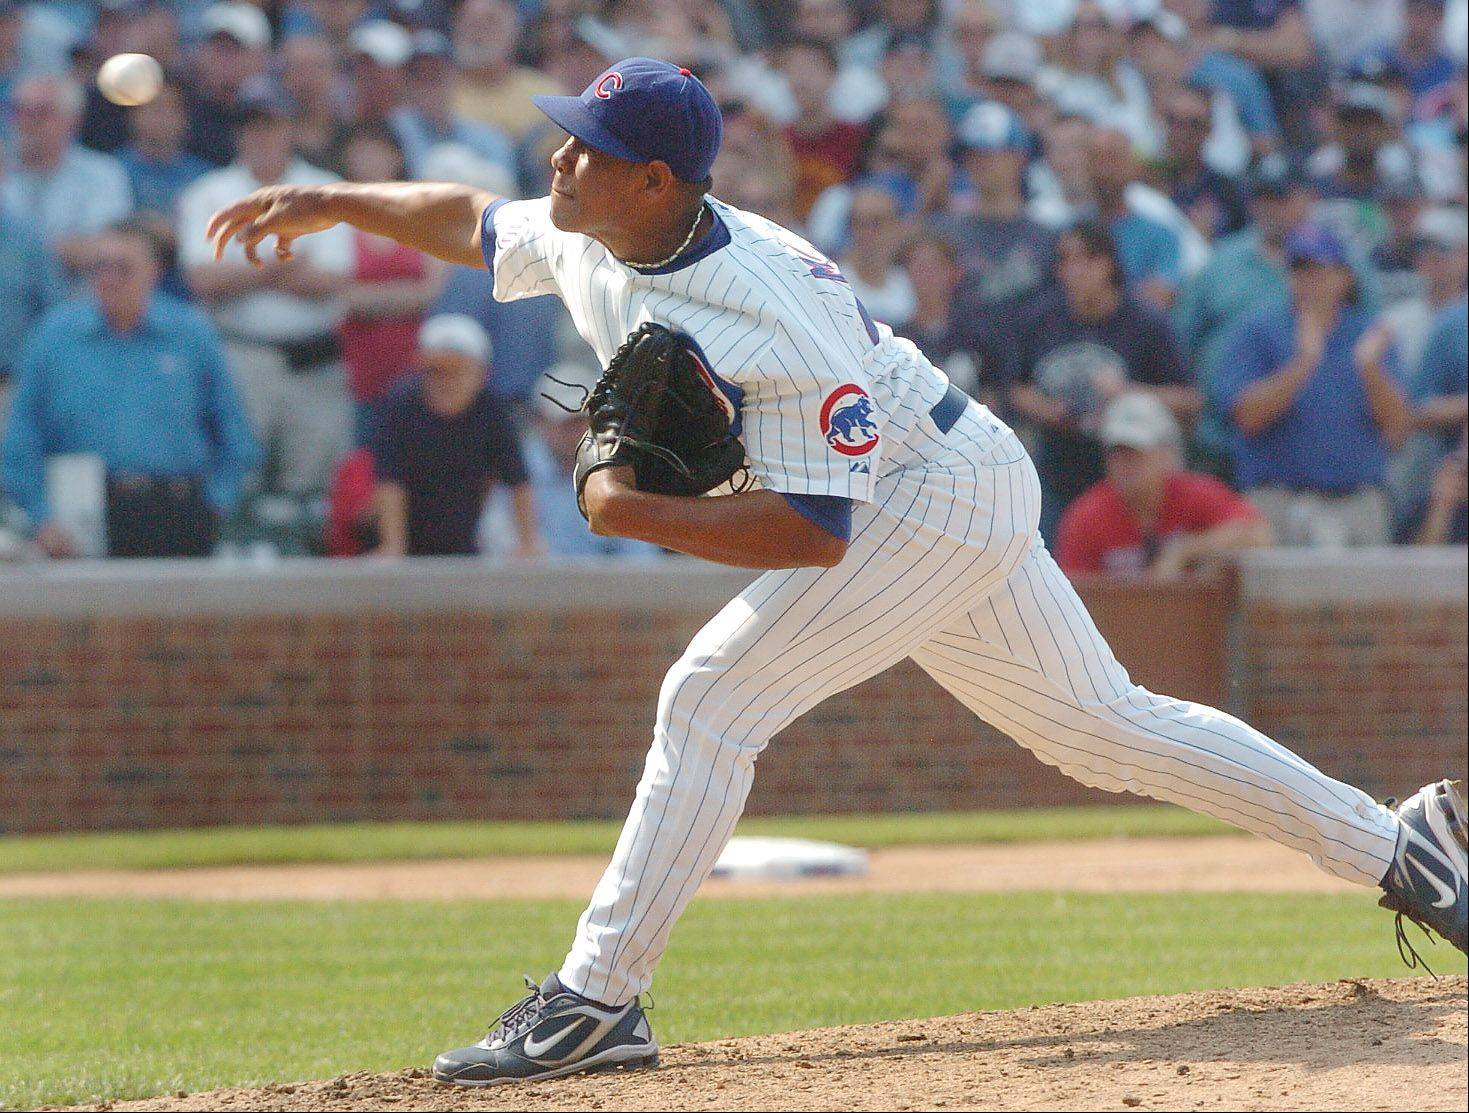 Cubs closer Carlos Marmol fires the final pitch against the Yankees.